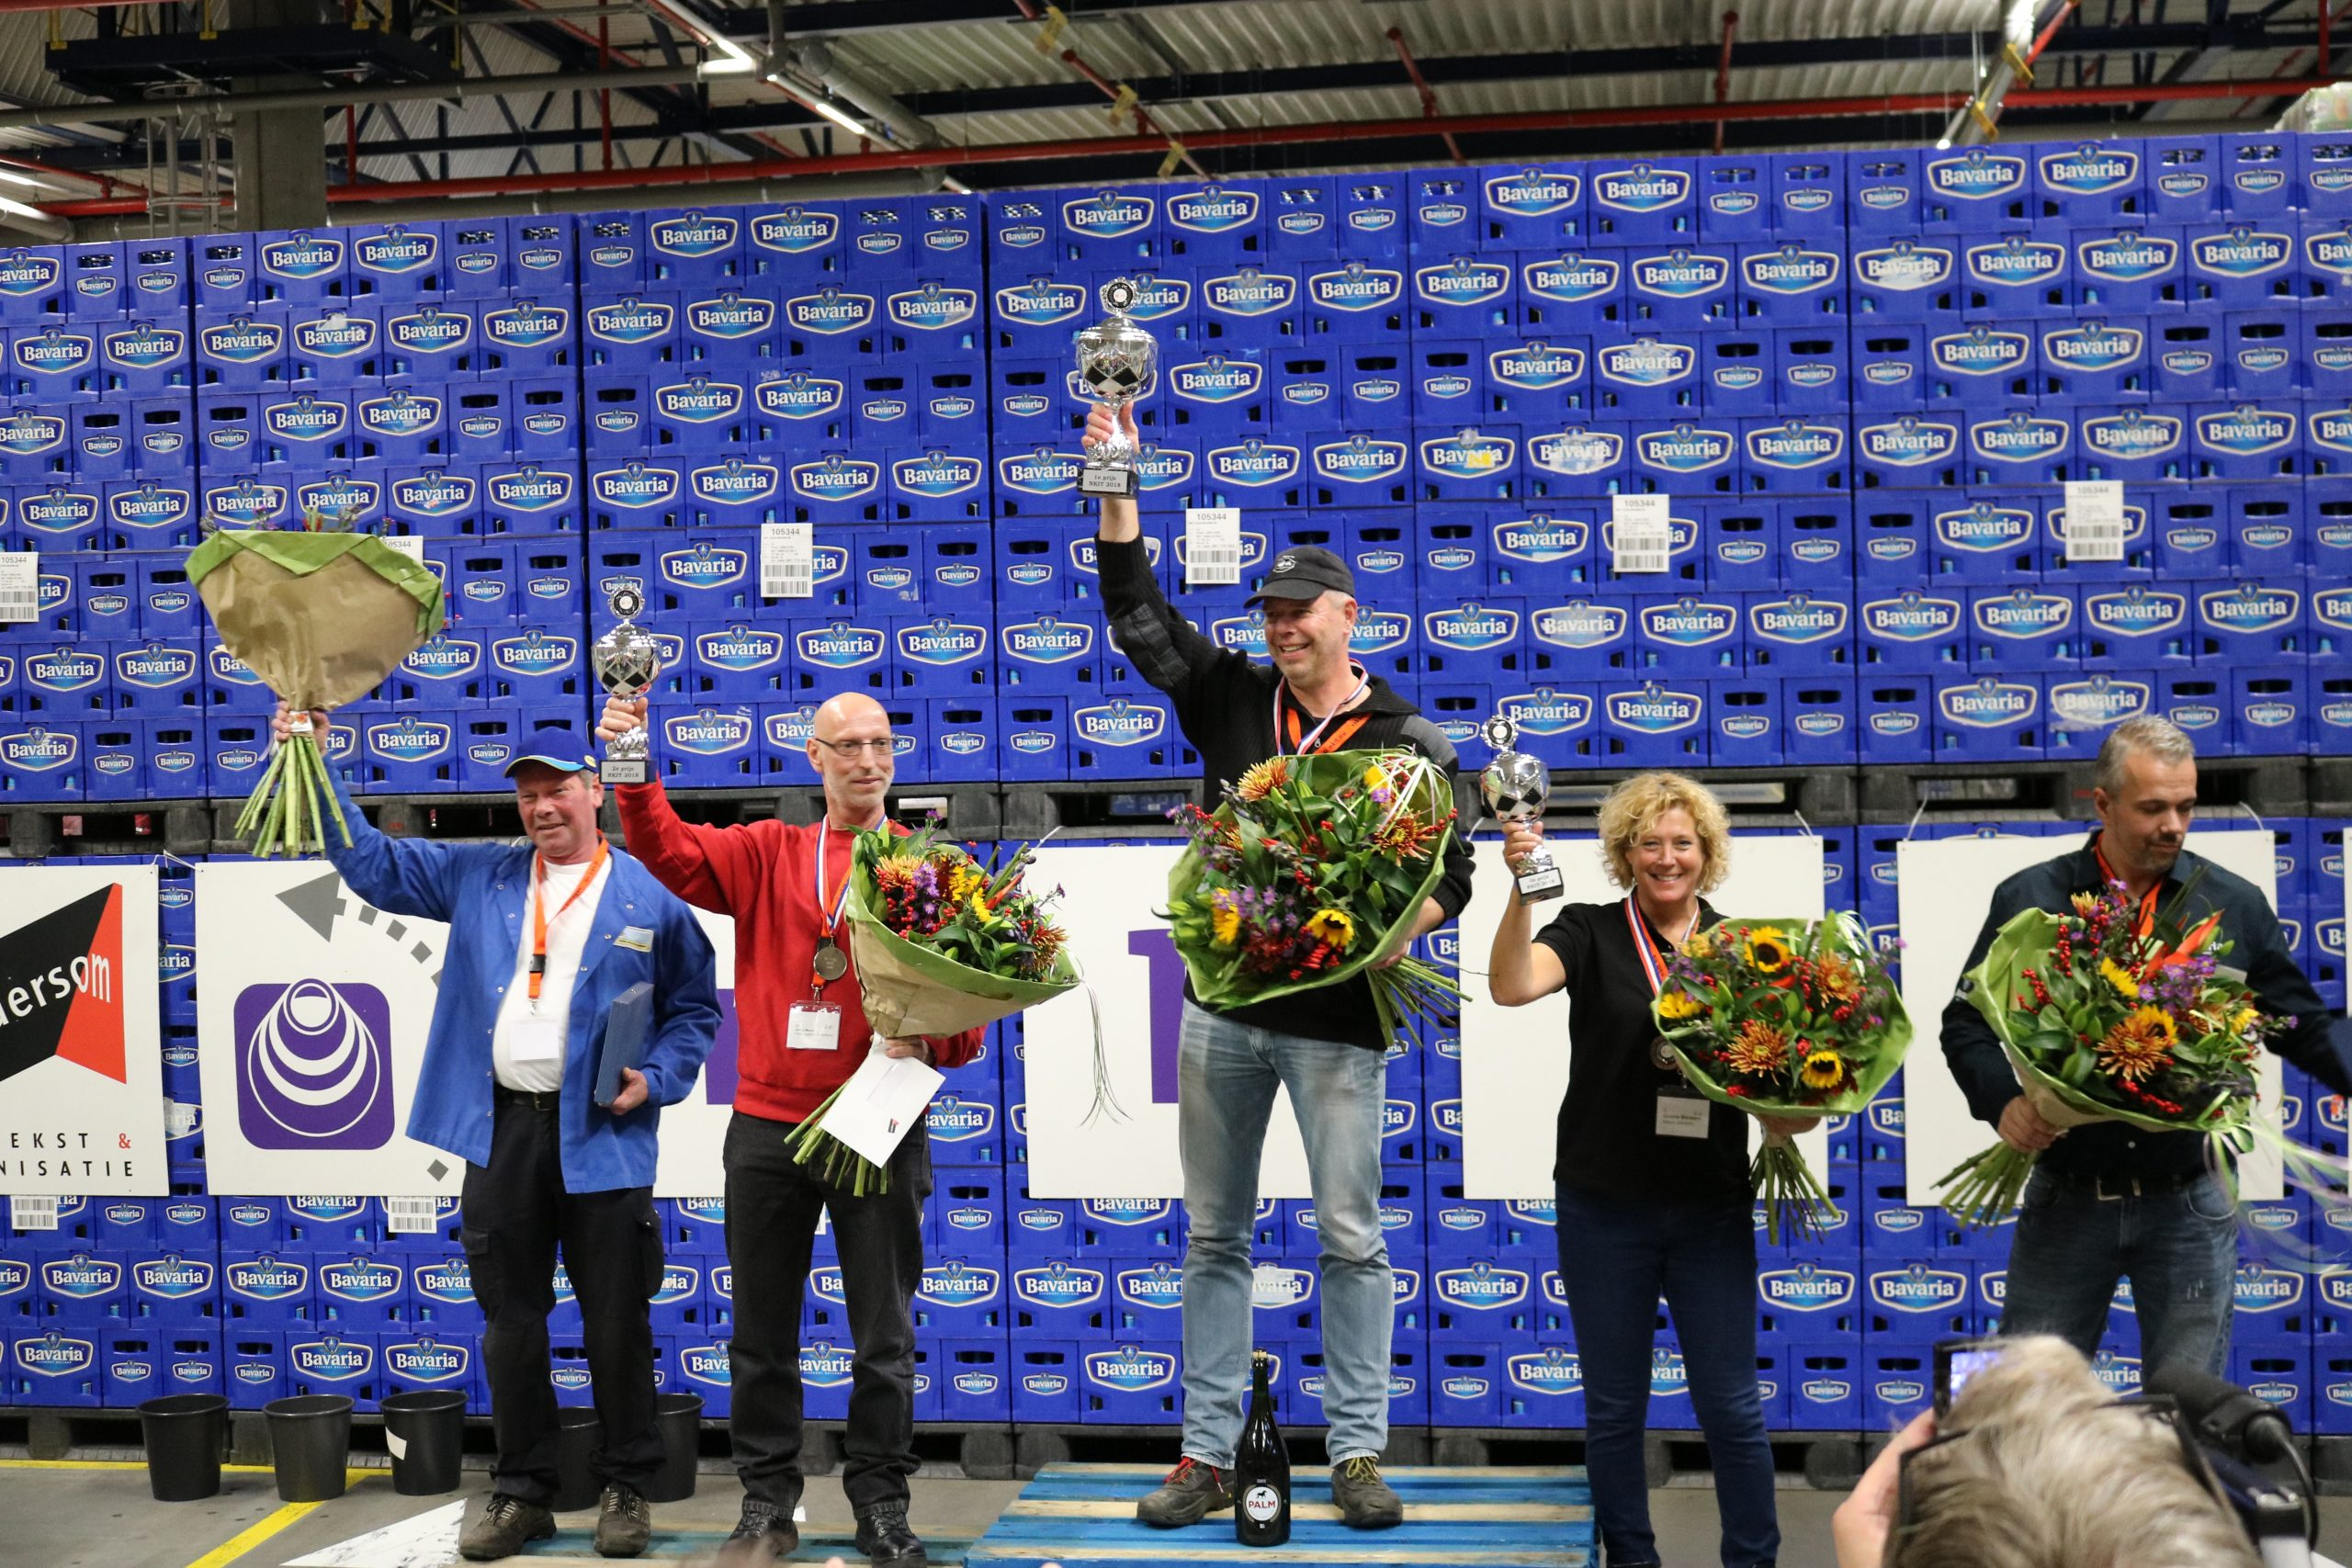 Dutch Championship for Internal Transport